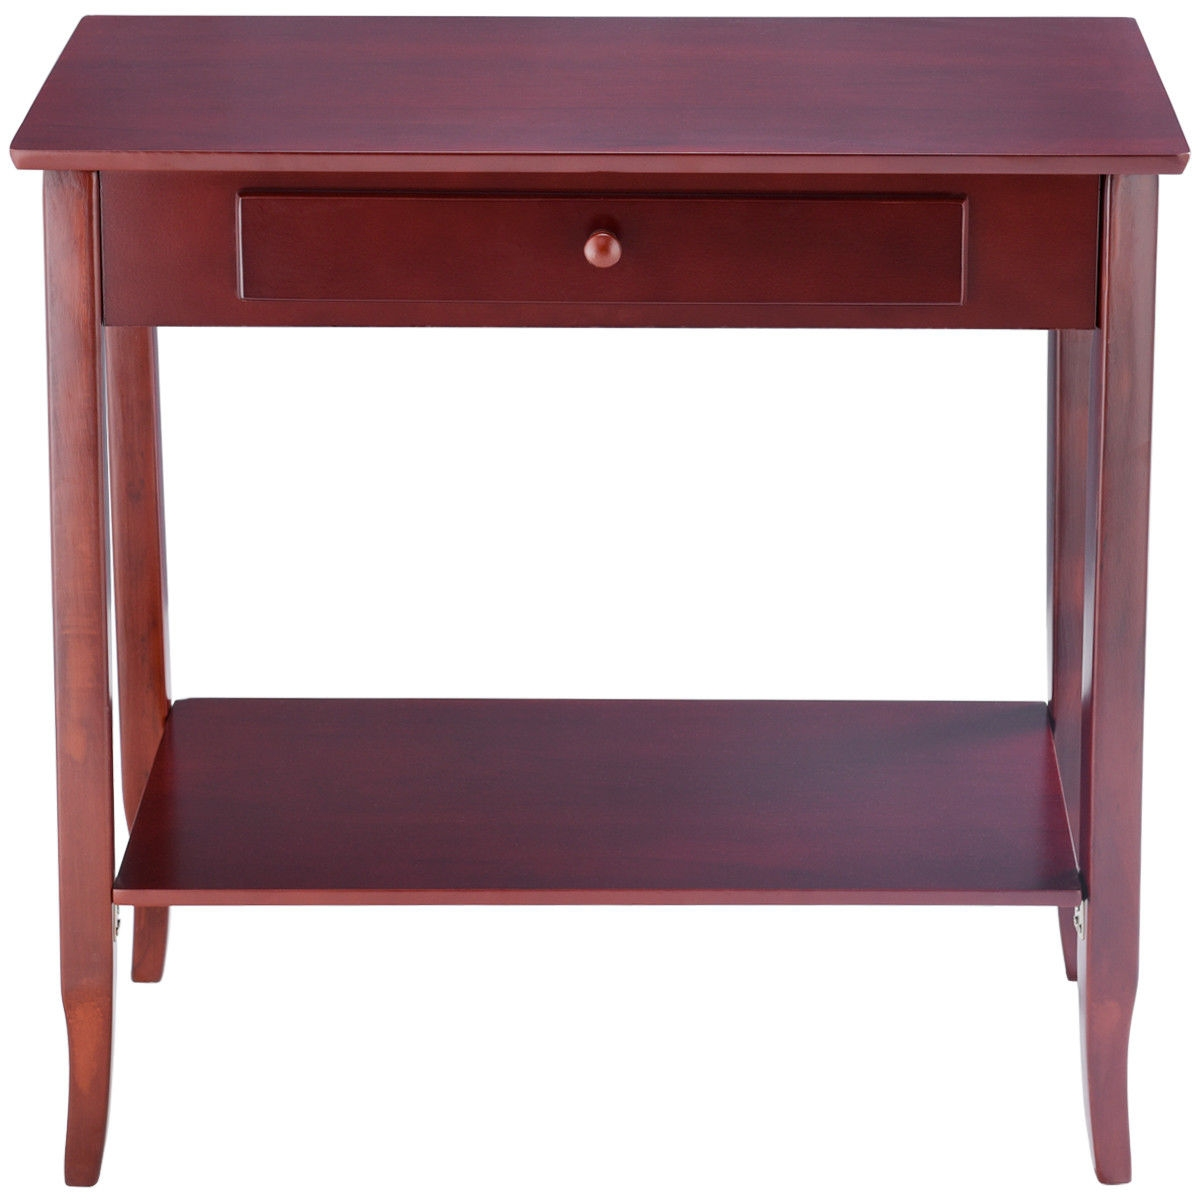 Classic 2-Tier Console Table Porch Table w/ Drawer